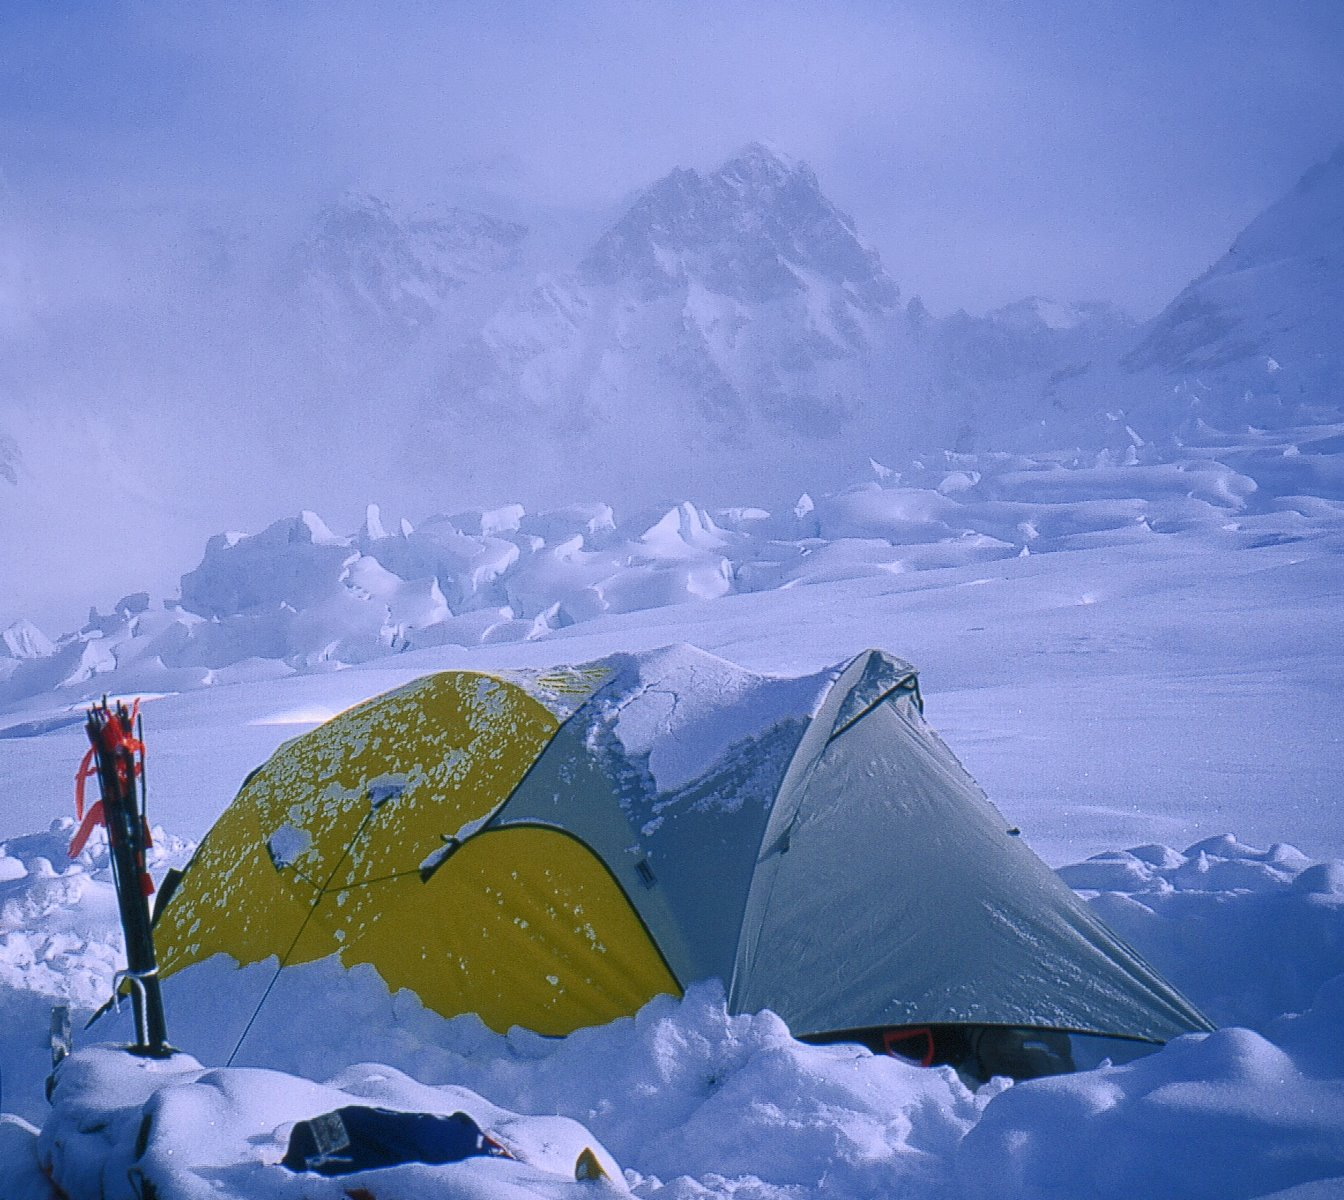 Camp at the top of the icefall, Grand Plateau Glacier, 6700 feet elevation, on the northwest slopes of Mt. Fairweather.